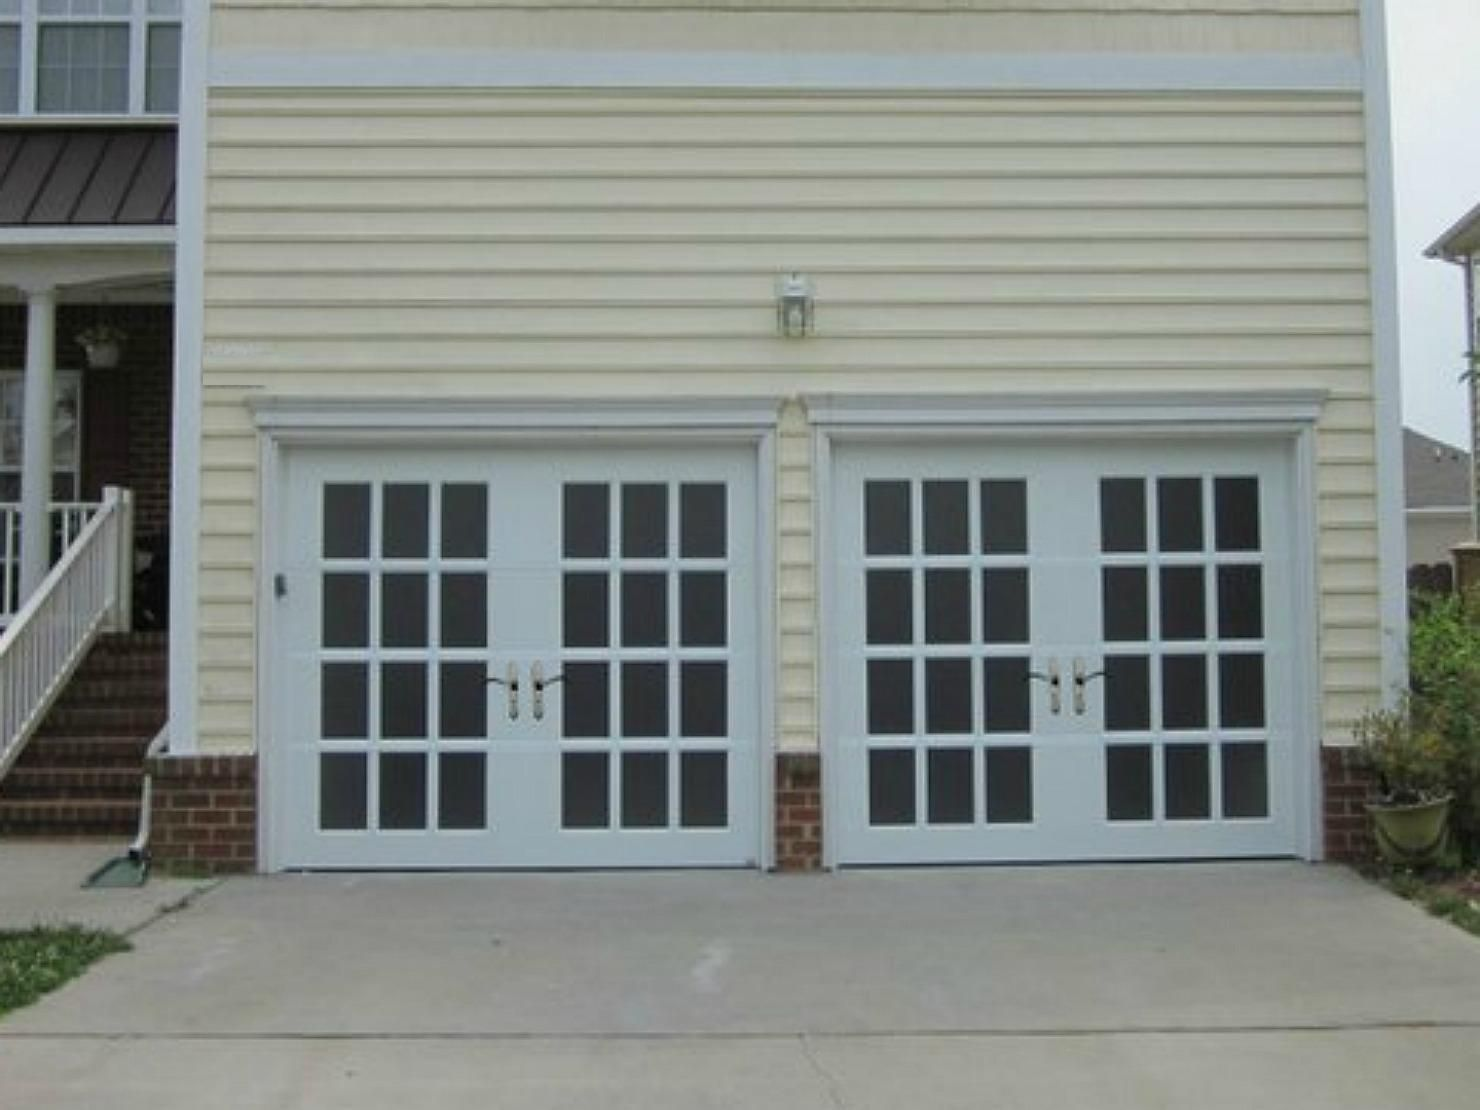 Garage door establishment is the methodology of assembling parts gorgeous garage doors styled to look like french doors beautiful design to add curb appeal rubansaba